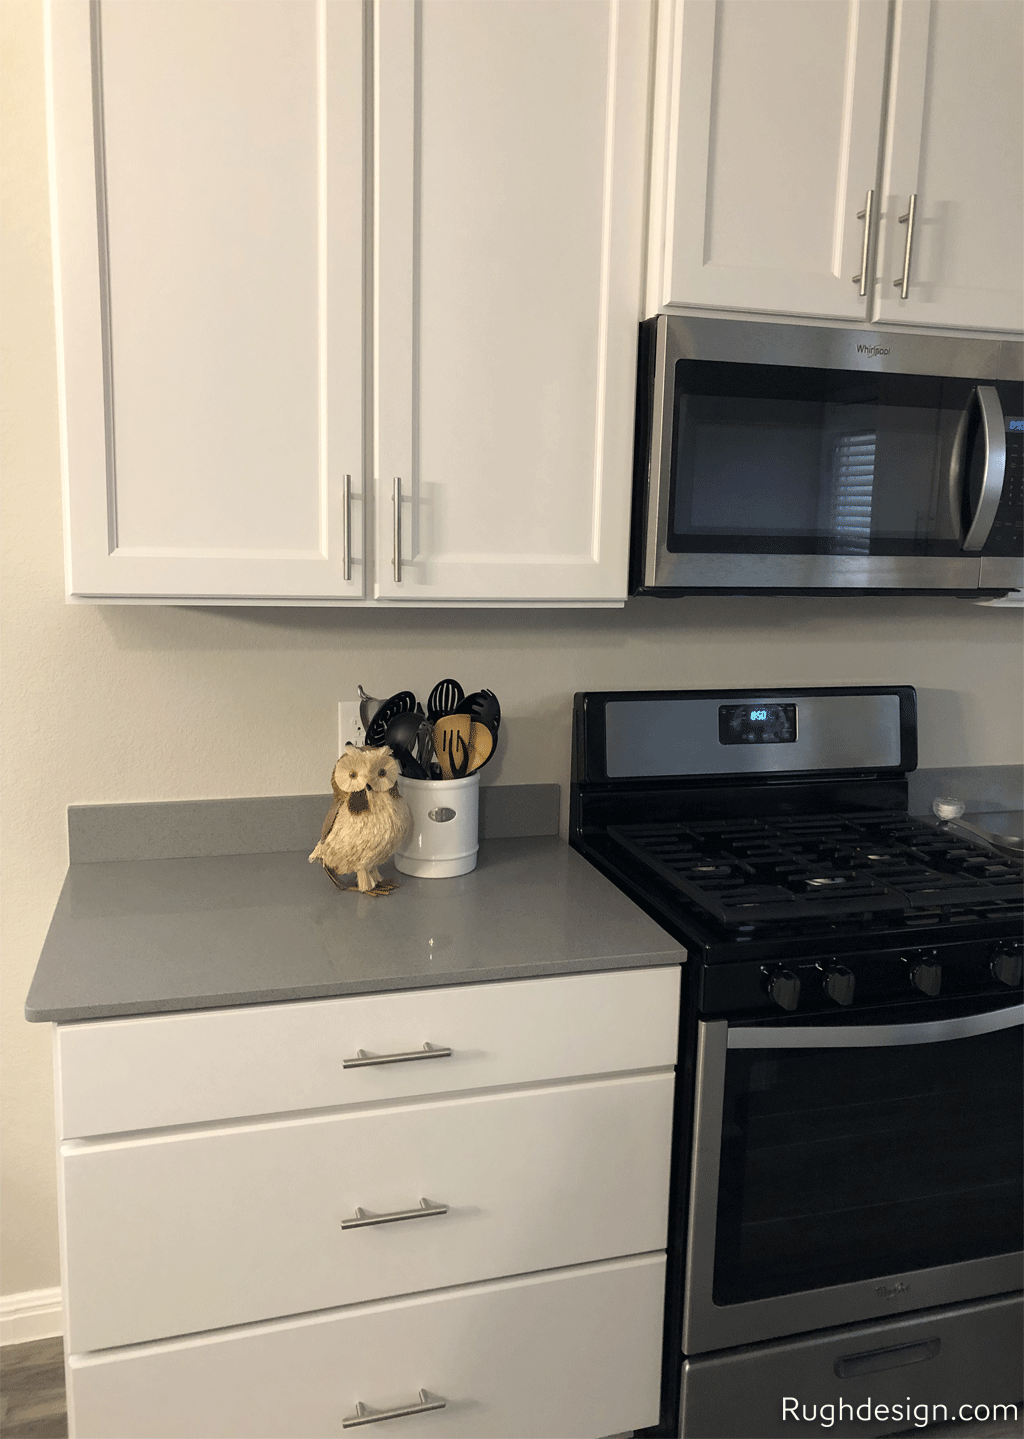 My White Kitchen Cabinets with Gray Countertops